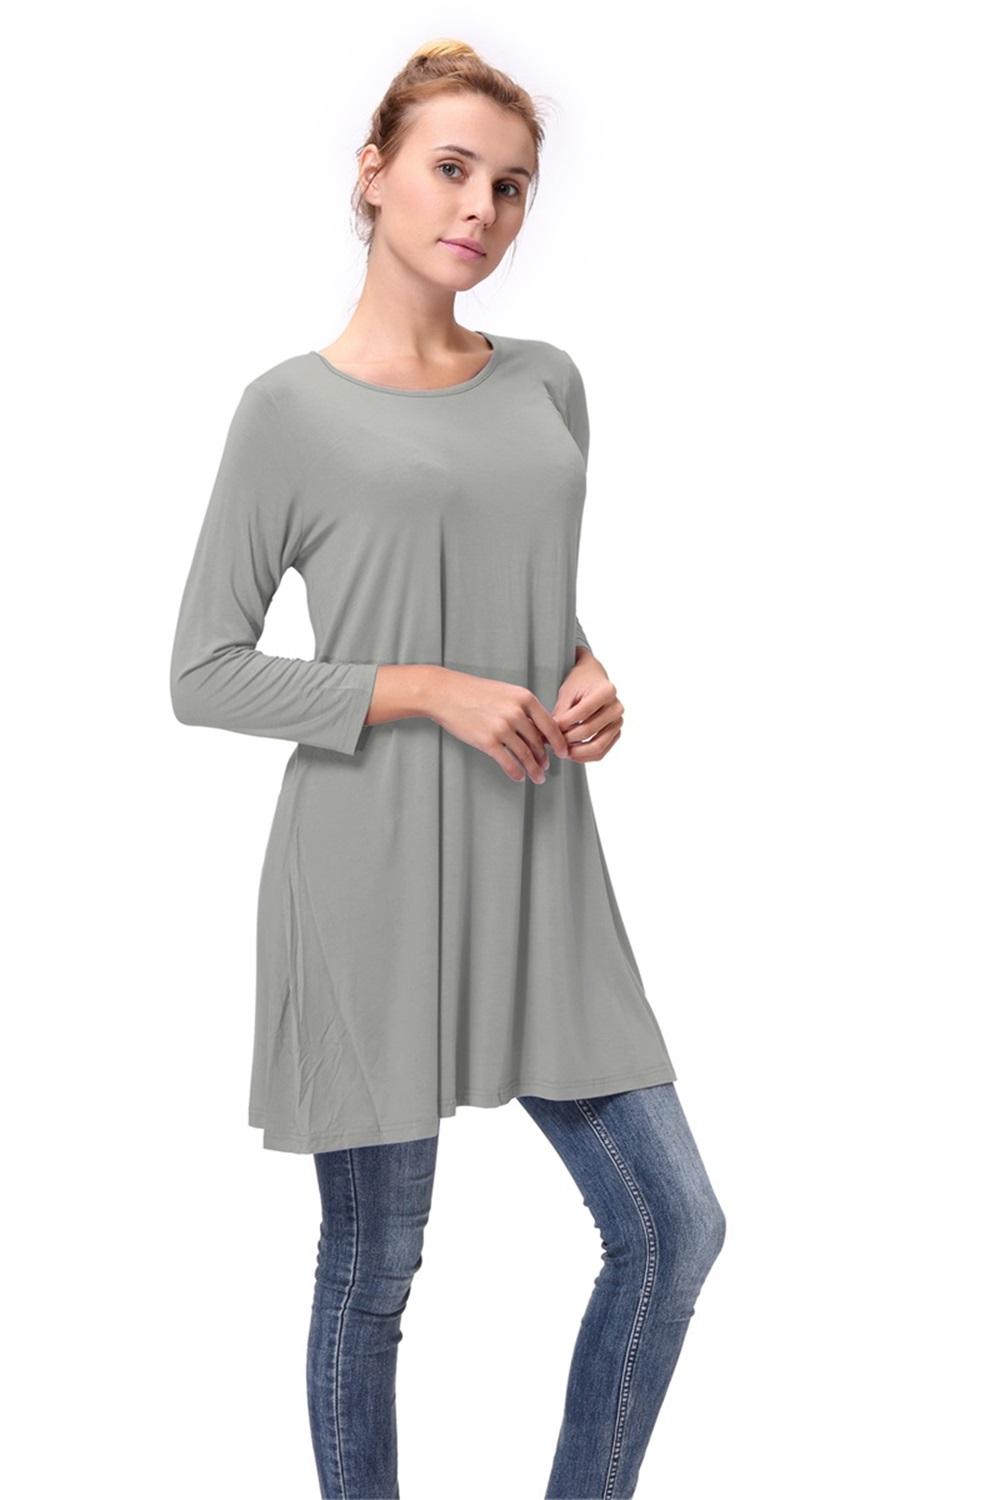 Women-039-s-Long-Tunic-Top-3-4-Sleeve-Dolman-Boat-Neck-USA-Dress-S-M-L-1X-2X-3X-PLUS thumbnail 33